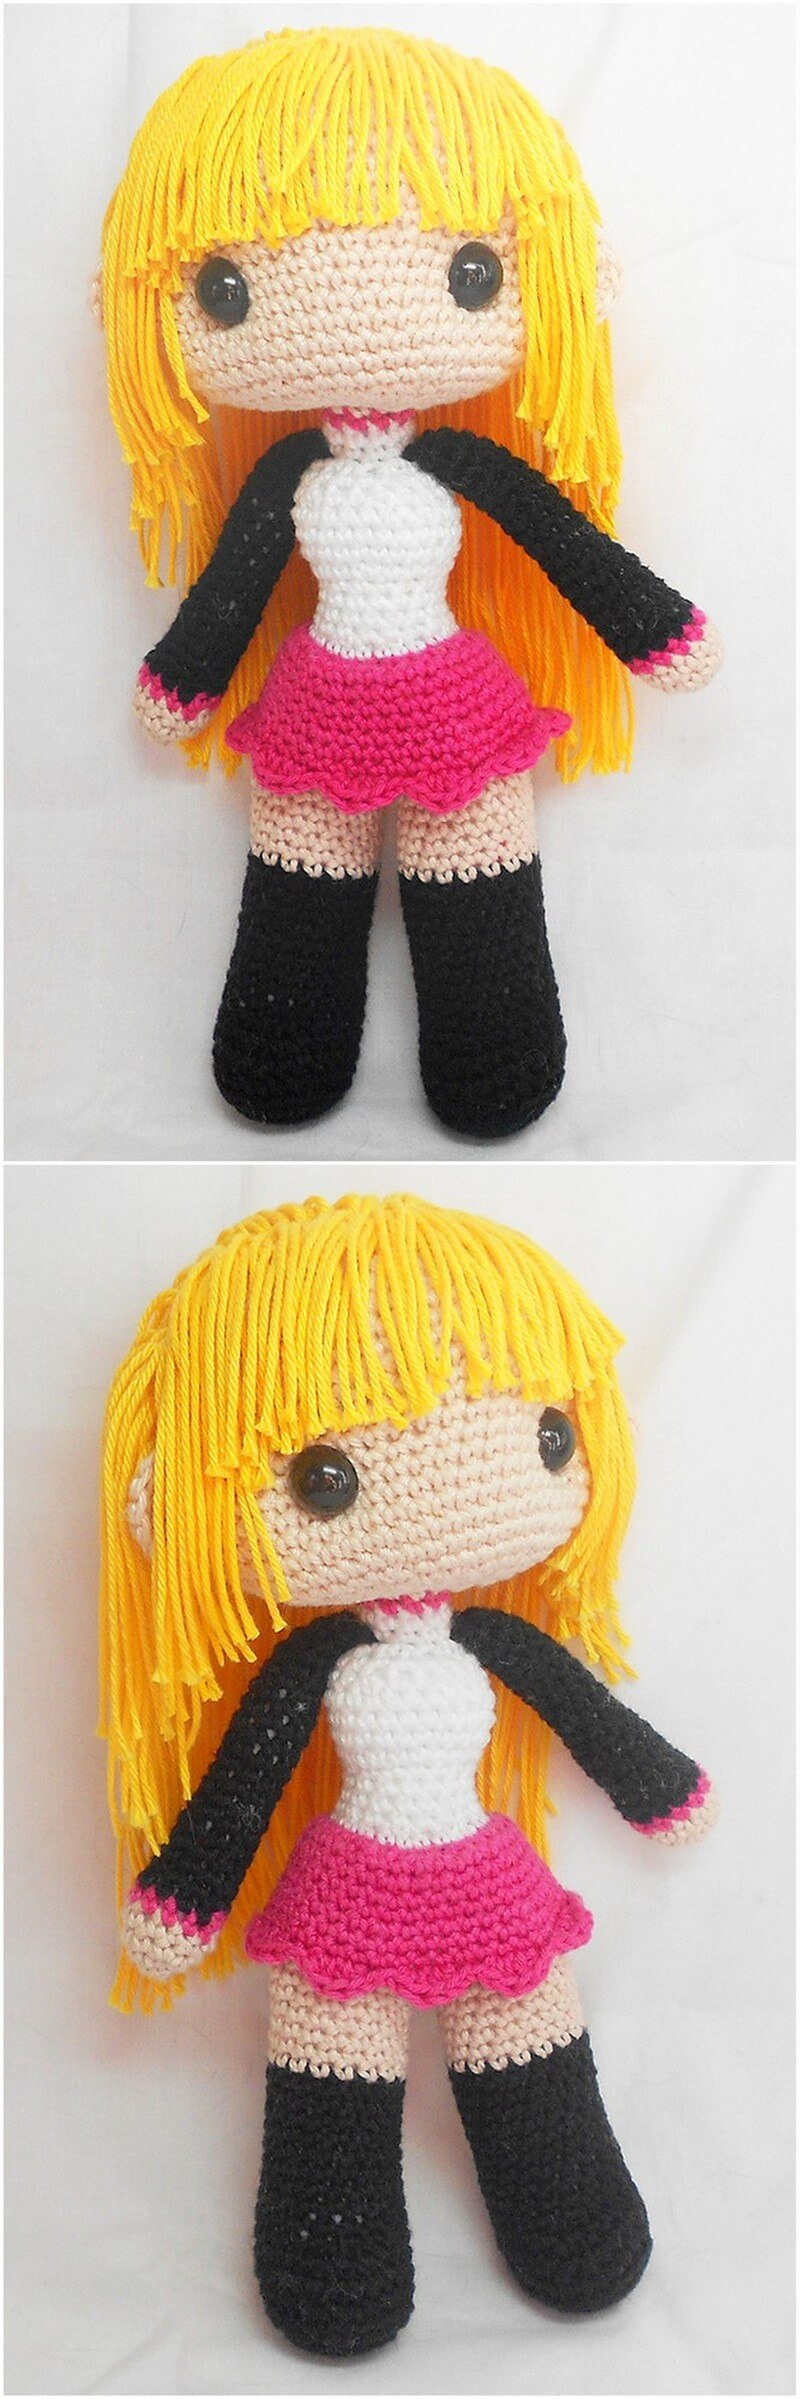 Crochet Amigurumi Doll Pattern (47)